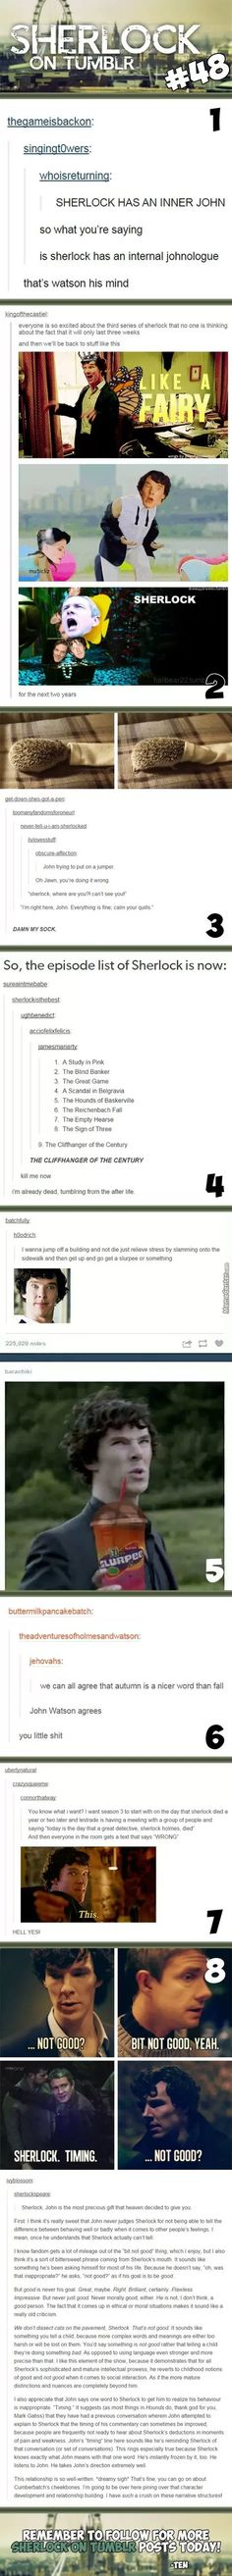 Sherlock On Tumblr